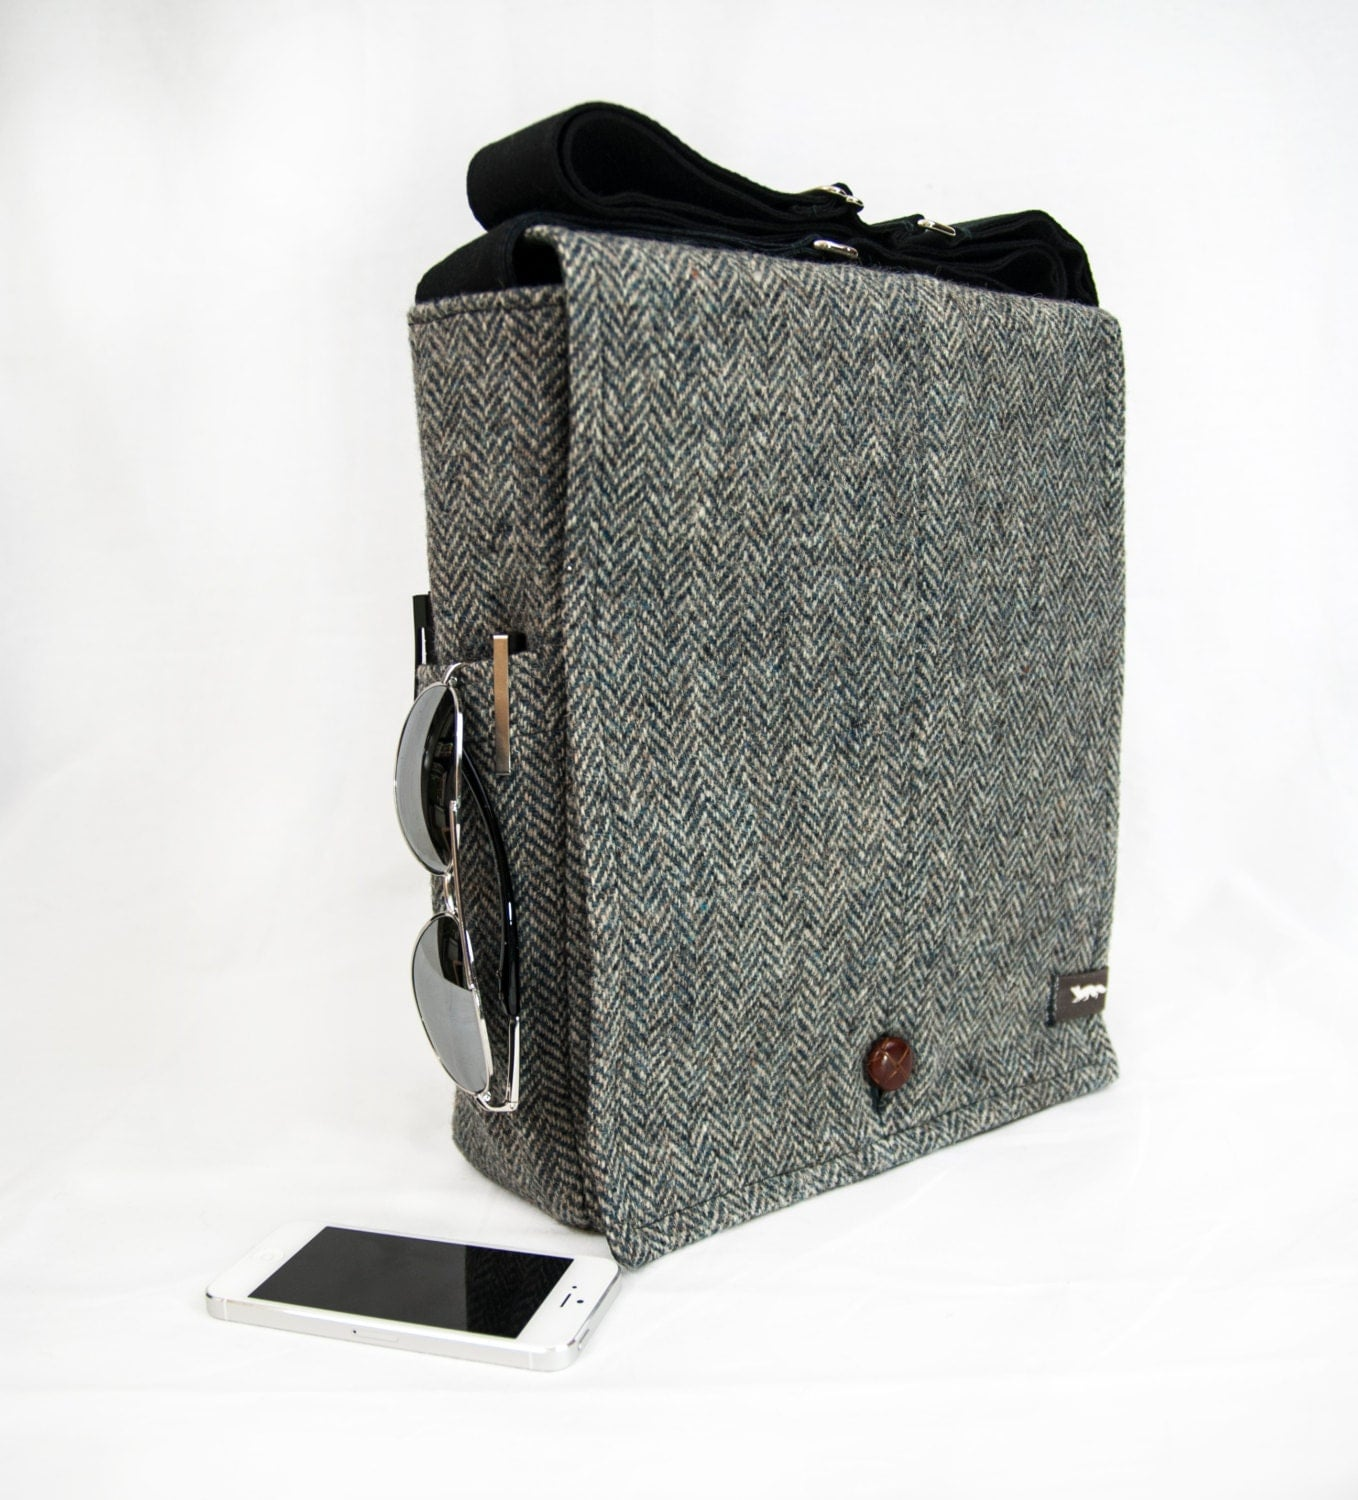 ORIGINAL SIZE Black Tweed Wool Recycled Vintage Suit Jacket Messenger Bag